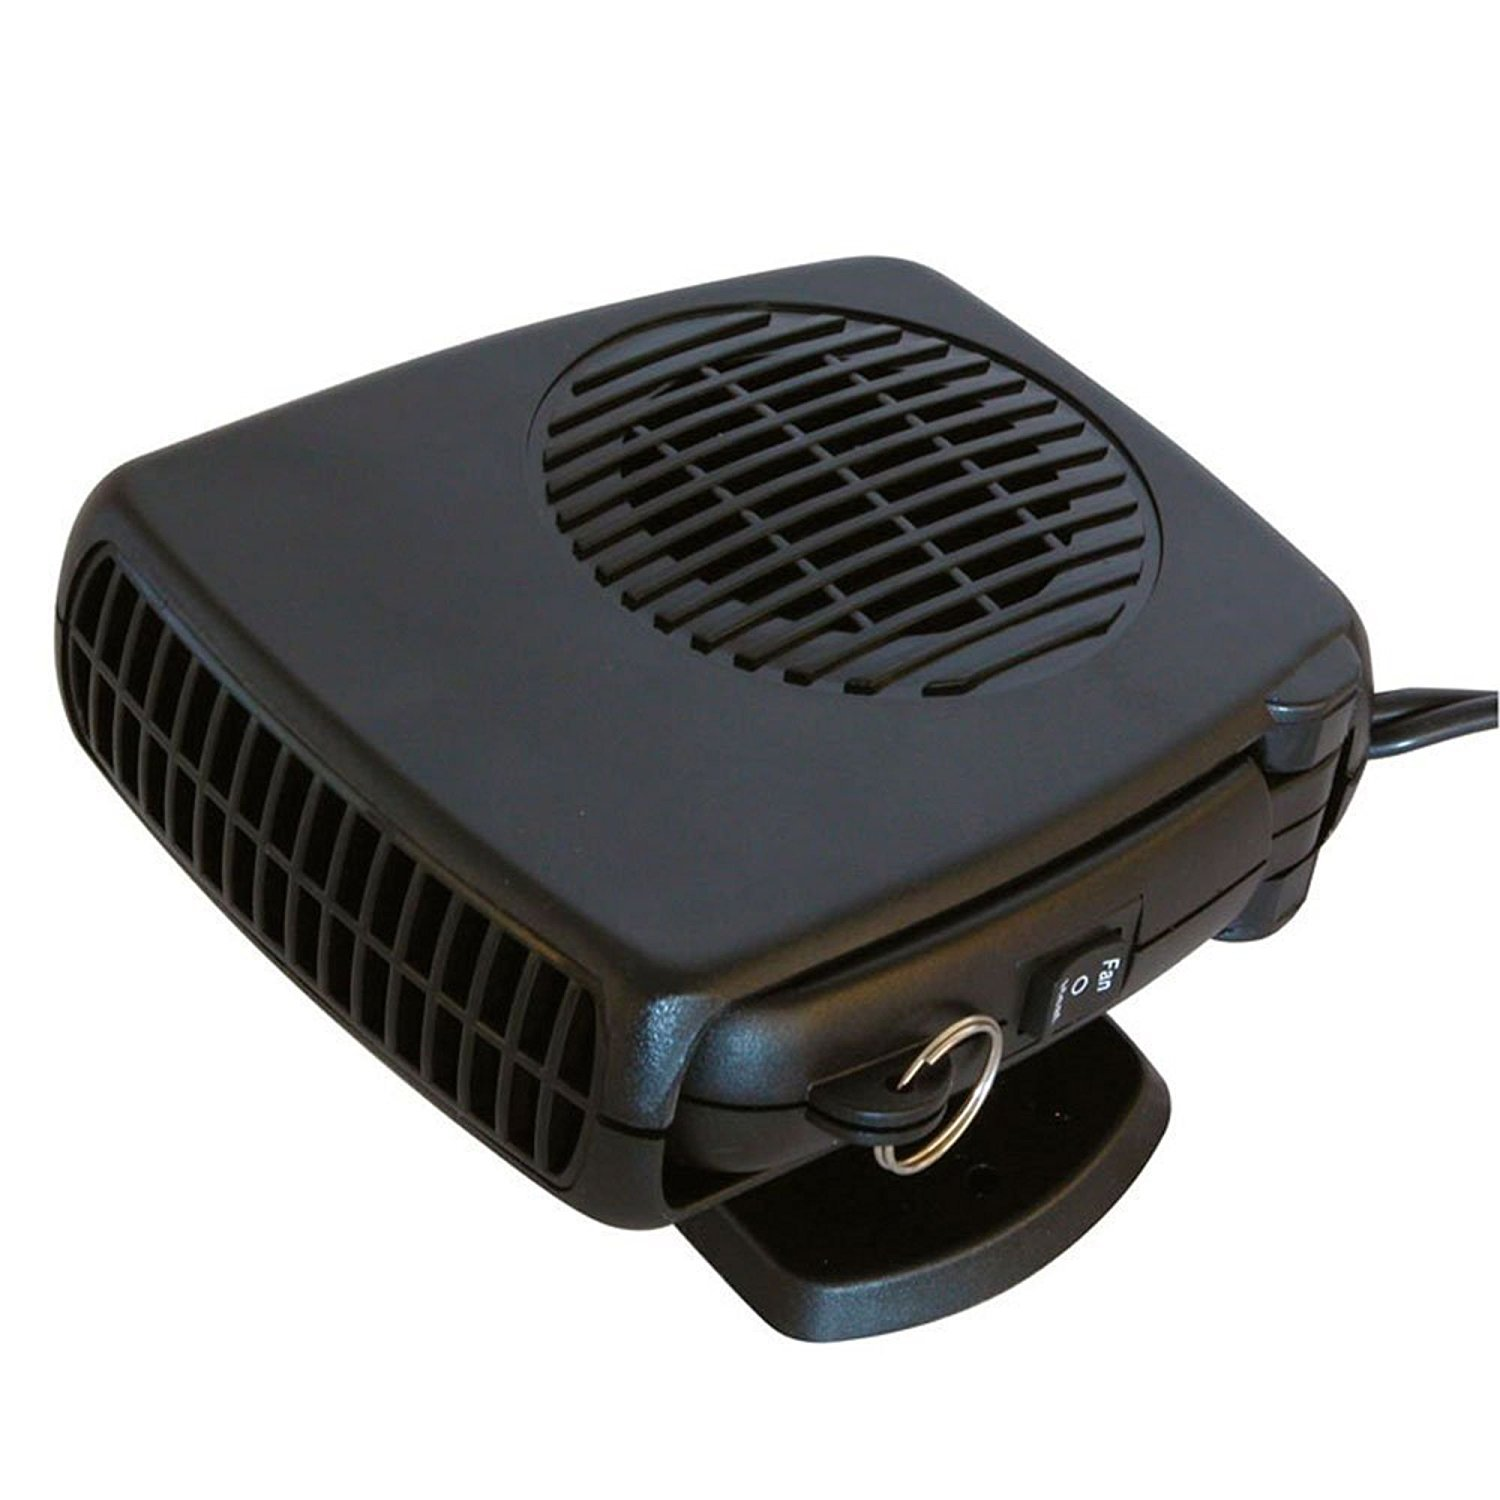 XtremeAuto® Universal 12v Car/Van/Camper Motor Home Cooler Fan Blower - Keeps Vehicle Cool on The Hot Summer Days XtremeAuto®